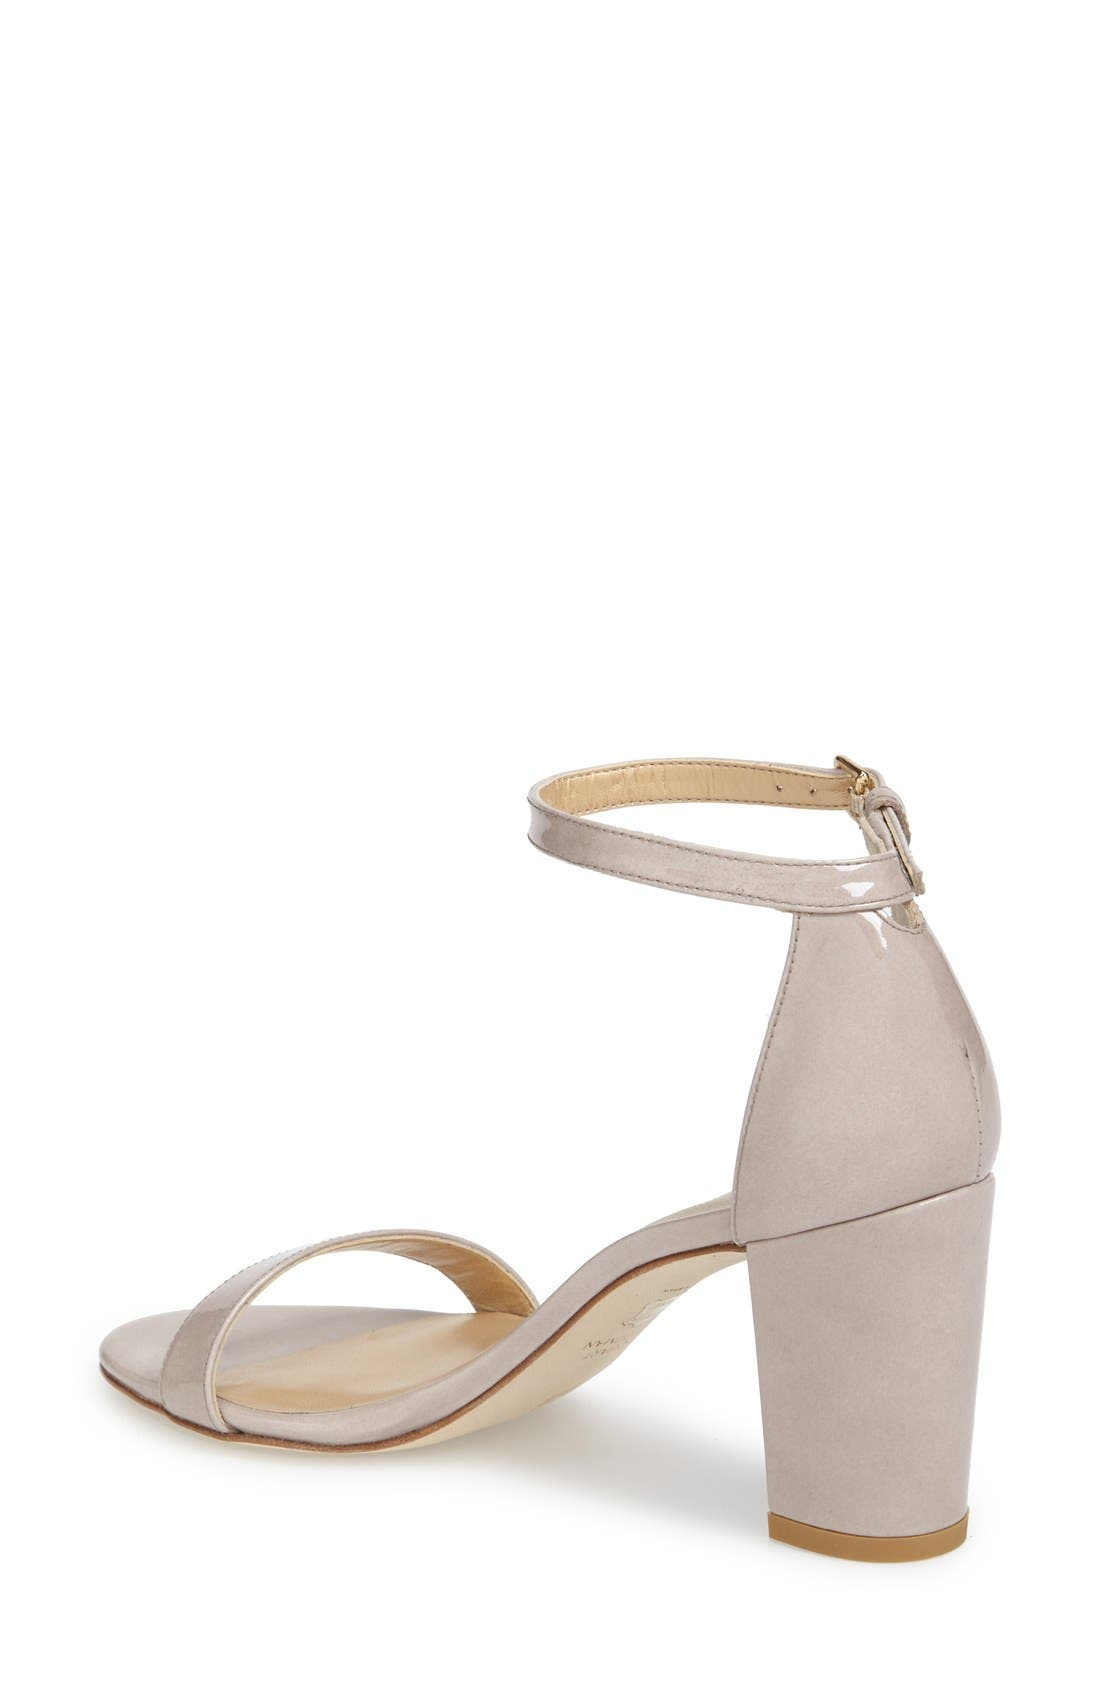 NearlyNude Ankle Strap Sandal,                             Alternate thumbnail 73, color,